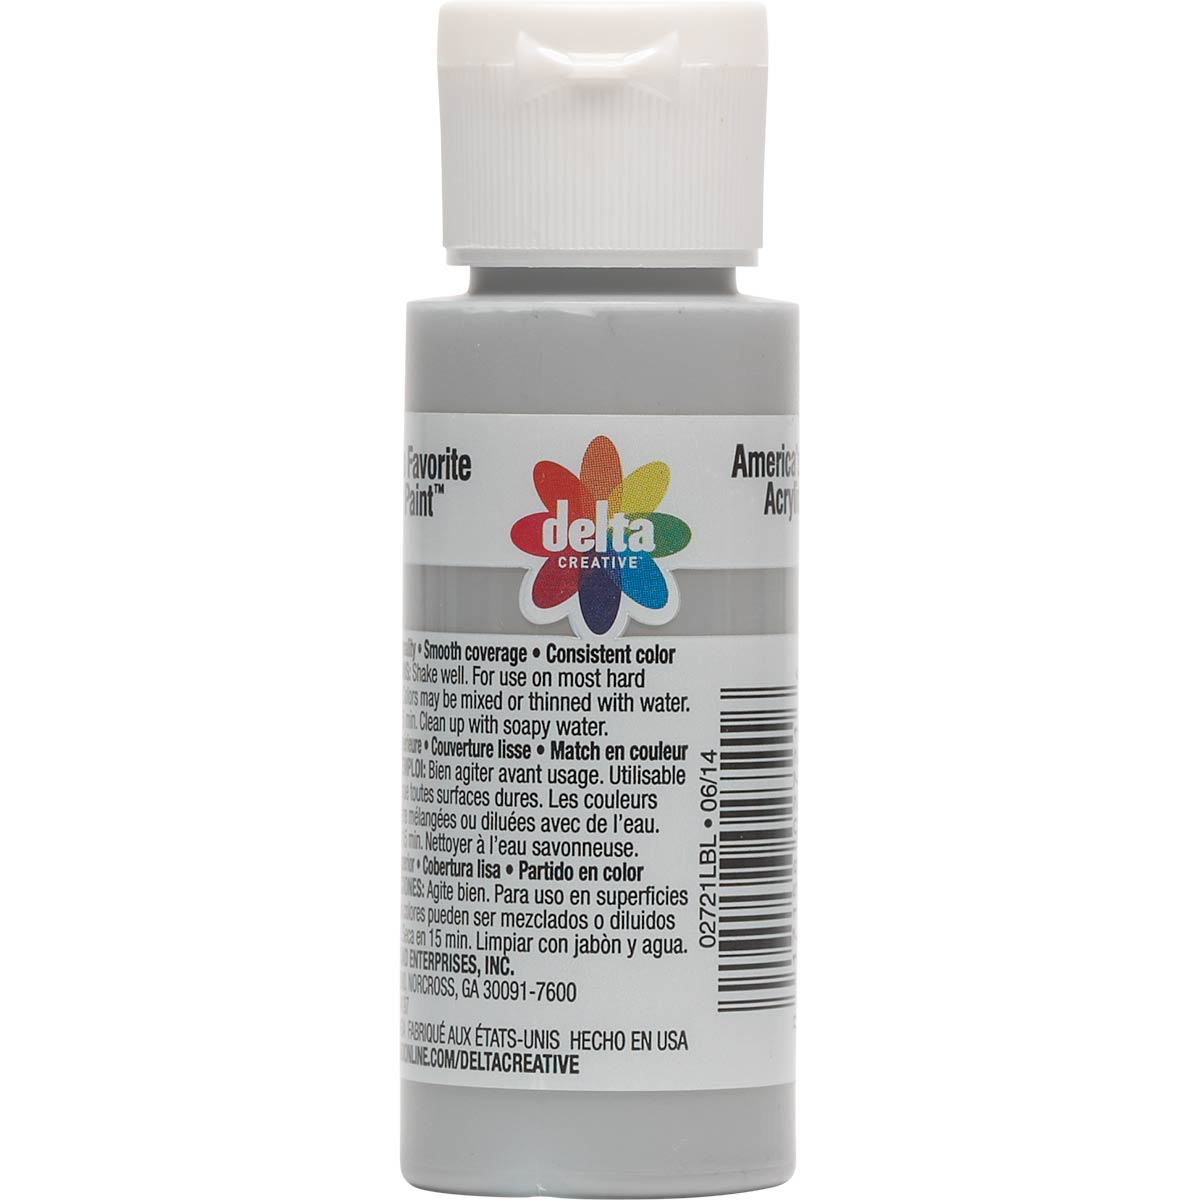 Delta Ceramcoat ® Acrylic Paint - Cableknit Gray, 2 oz. - 02721